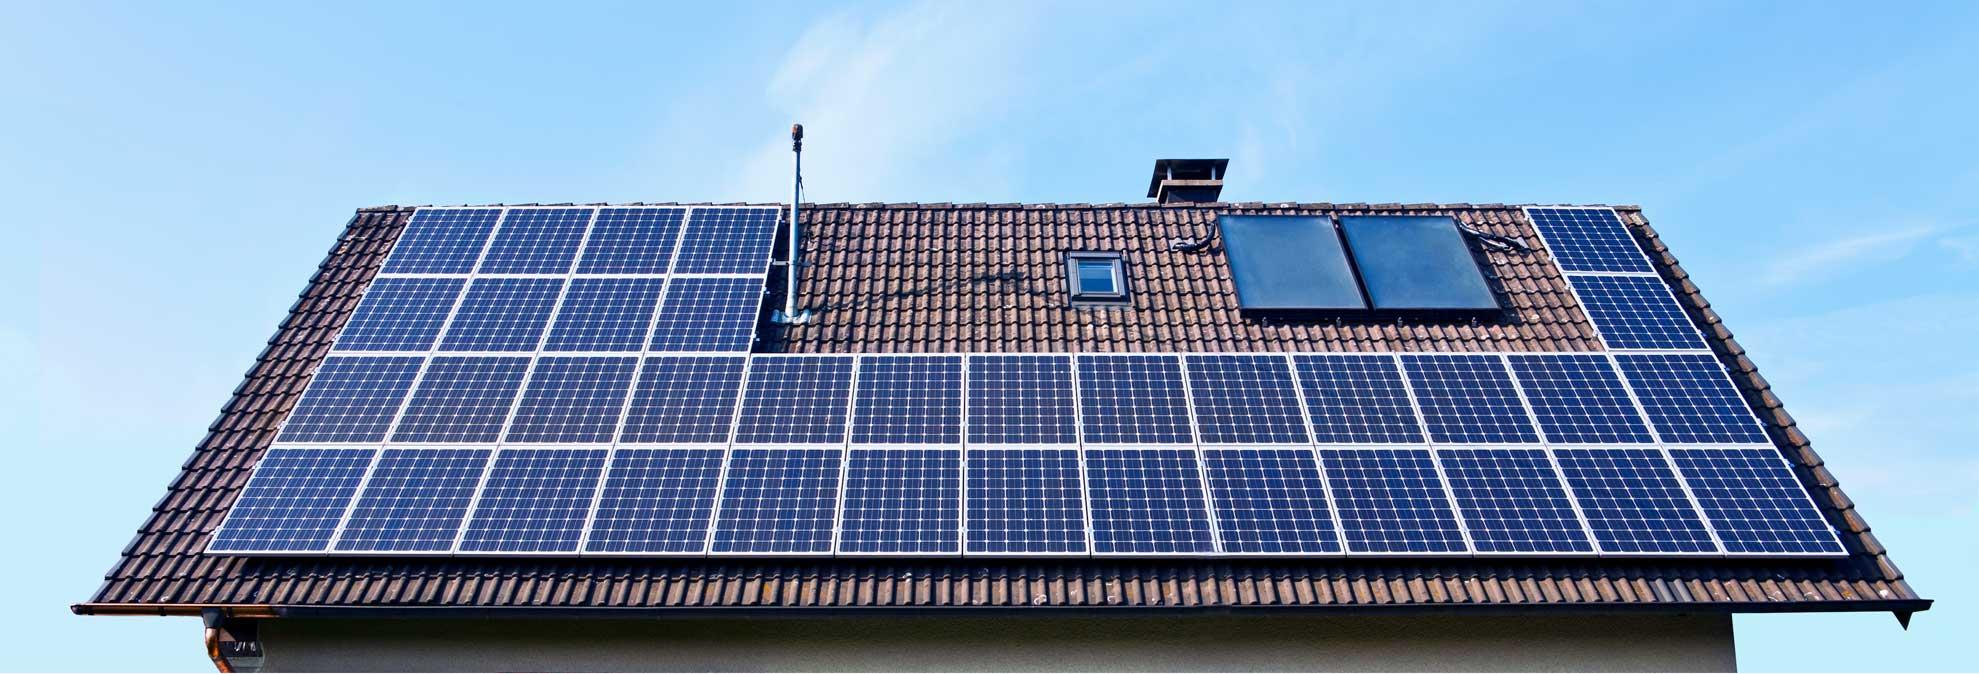 go solar Go solar usa, inc is a team of experienced professionals in the design and installation of high performance renewable energy systems we.